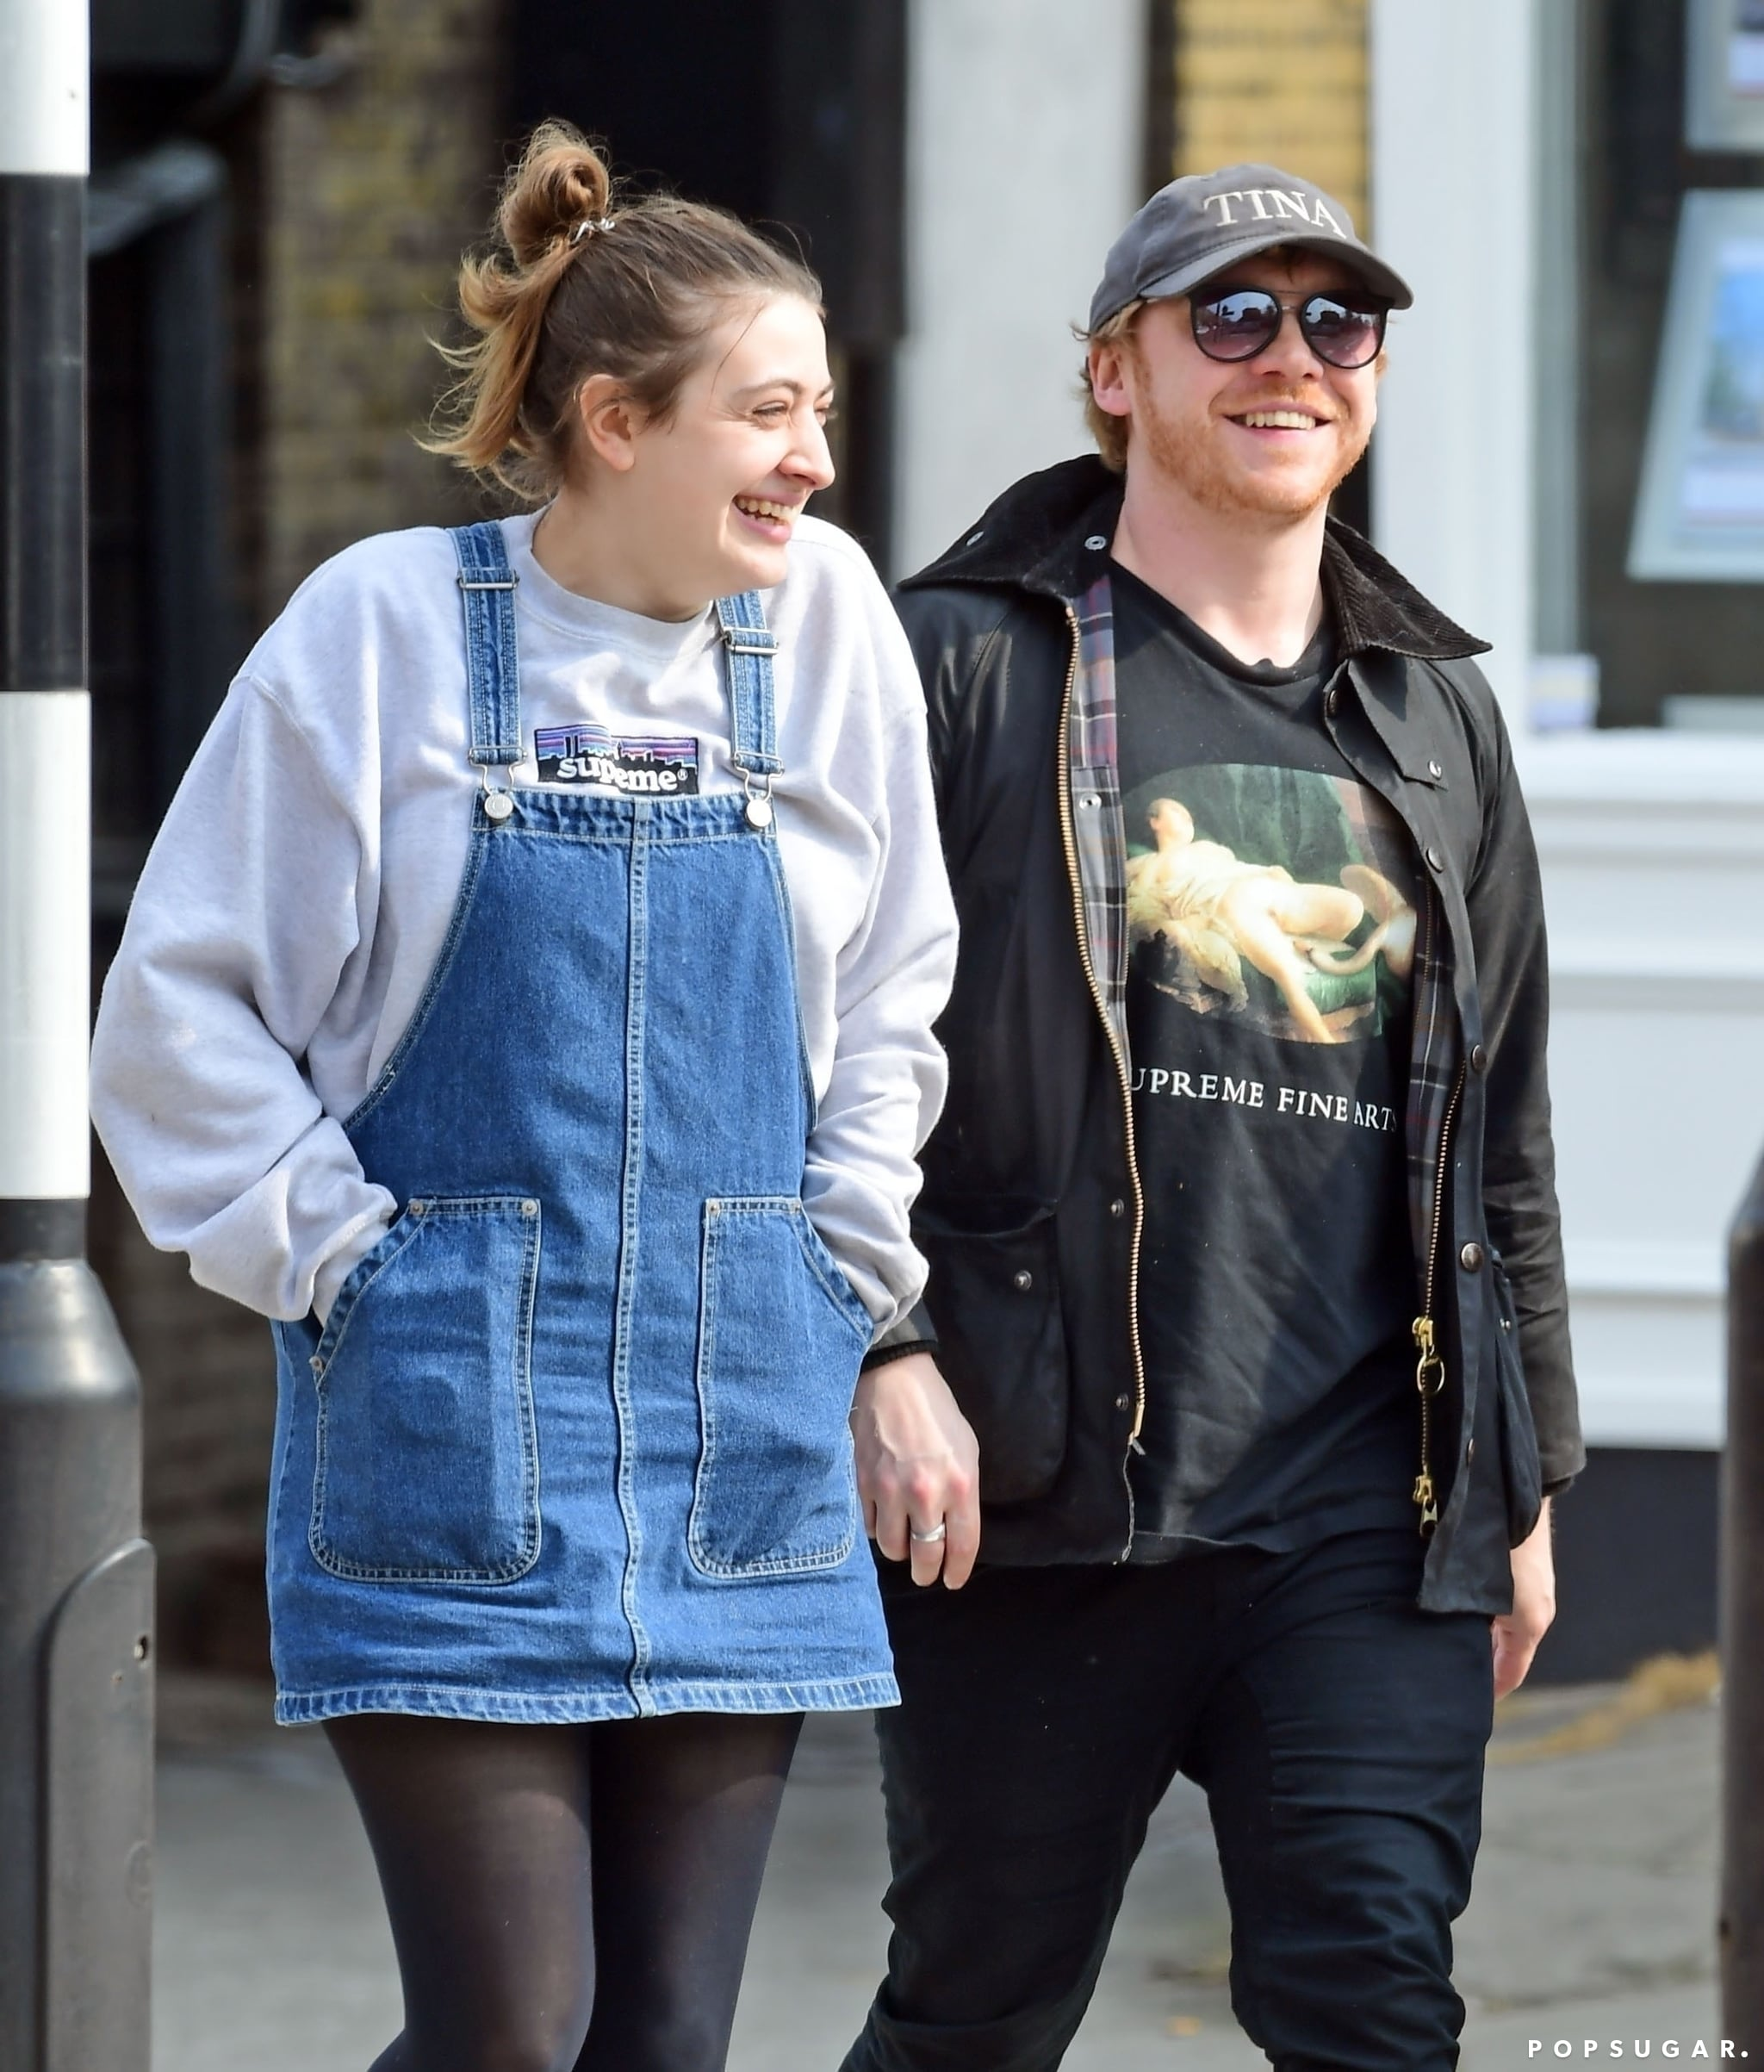 London, UNITED KINGDOM  - *EXCLUSIVE*  -  Harry Potter actor Rupert Grint and longtime girlfriend Georgia Groome pictured out enjoying lunch together and both sporting wedding bands. The loved up couple were out with friends having a great time at a very village themed looking pub in plush Highgate, North London. Is it possible that the our beloved Harry Potter's Ron Weasley has got married in secret??*PICTURES TAKEN ON 17/04/2019*Pictured: Rupert Grint and Georgia GroomeBACKGRID USA 21 APRIL 2019 BYLINE MUST READ: NASH / BACKGRIDUSA: +1 310 798 9111 / usasales@backgrid.comUK: +44 208 344 2007 / uksales@backgrid.com*UK Clients - Pictures Containing ChildrenPlease Pixelate Face Prior To Publication*